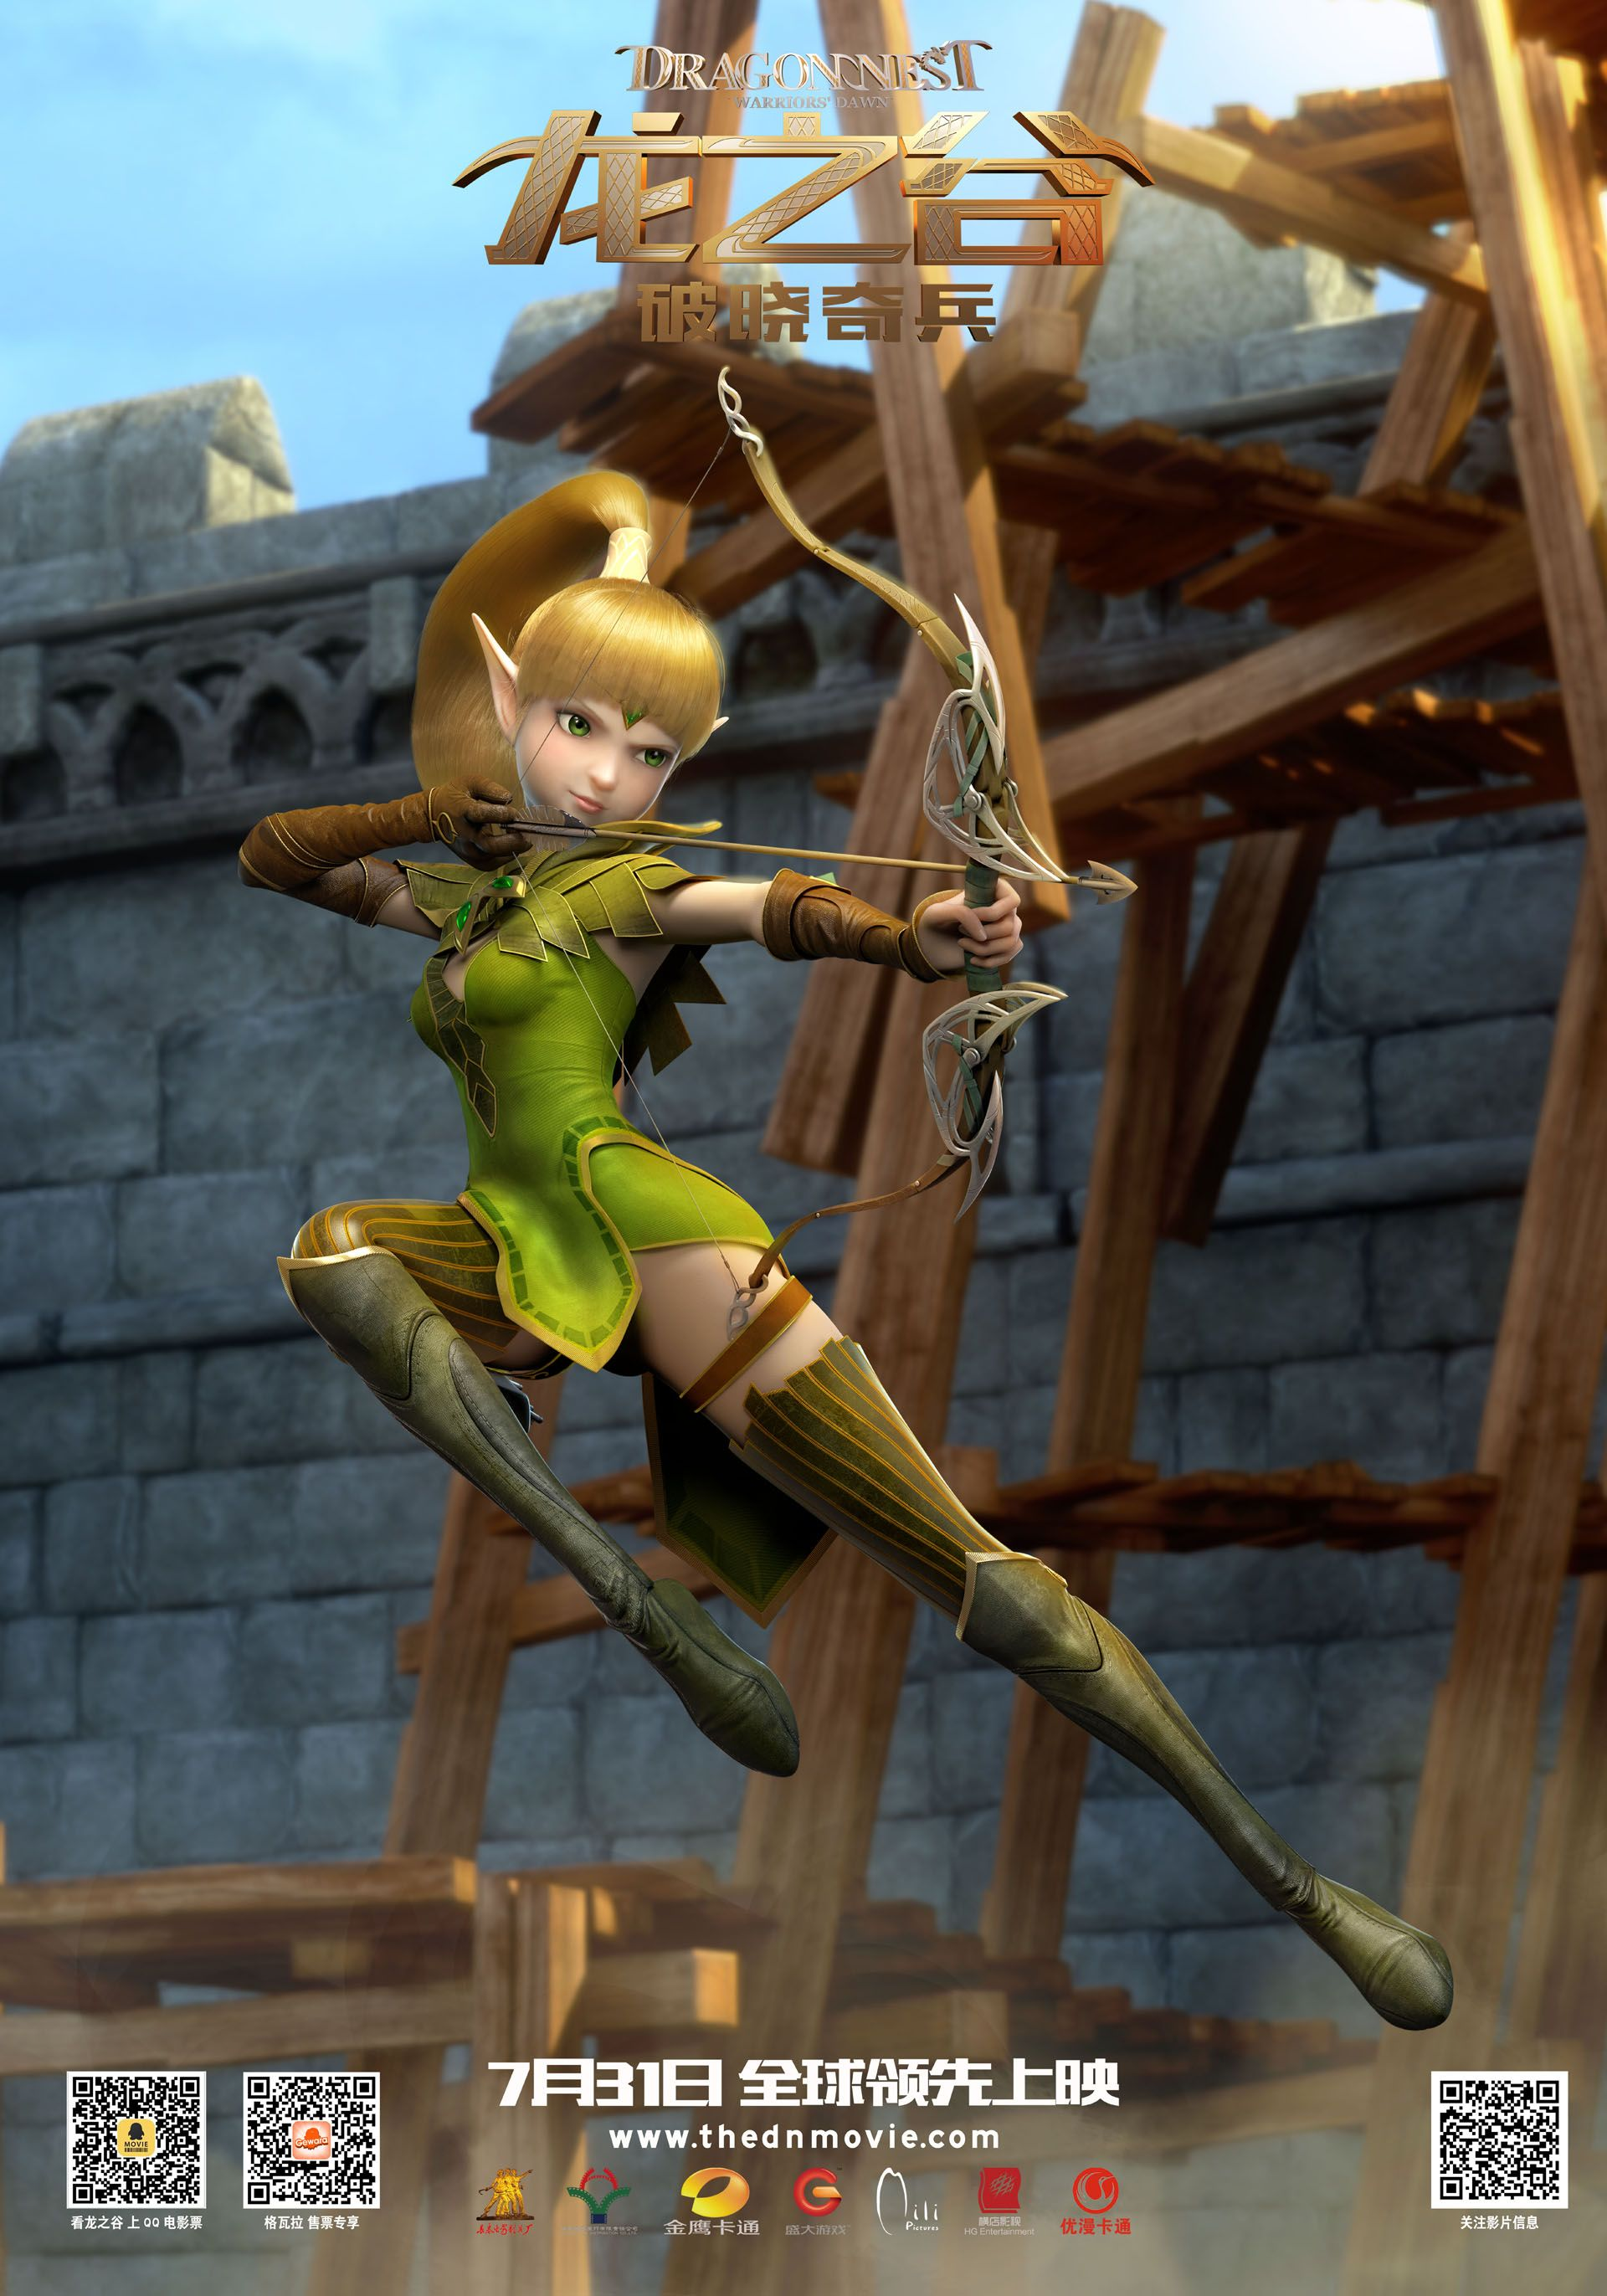 dragon nest 2 liya hd